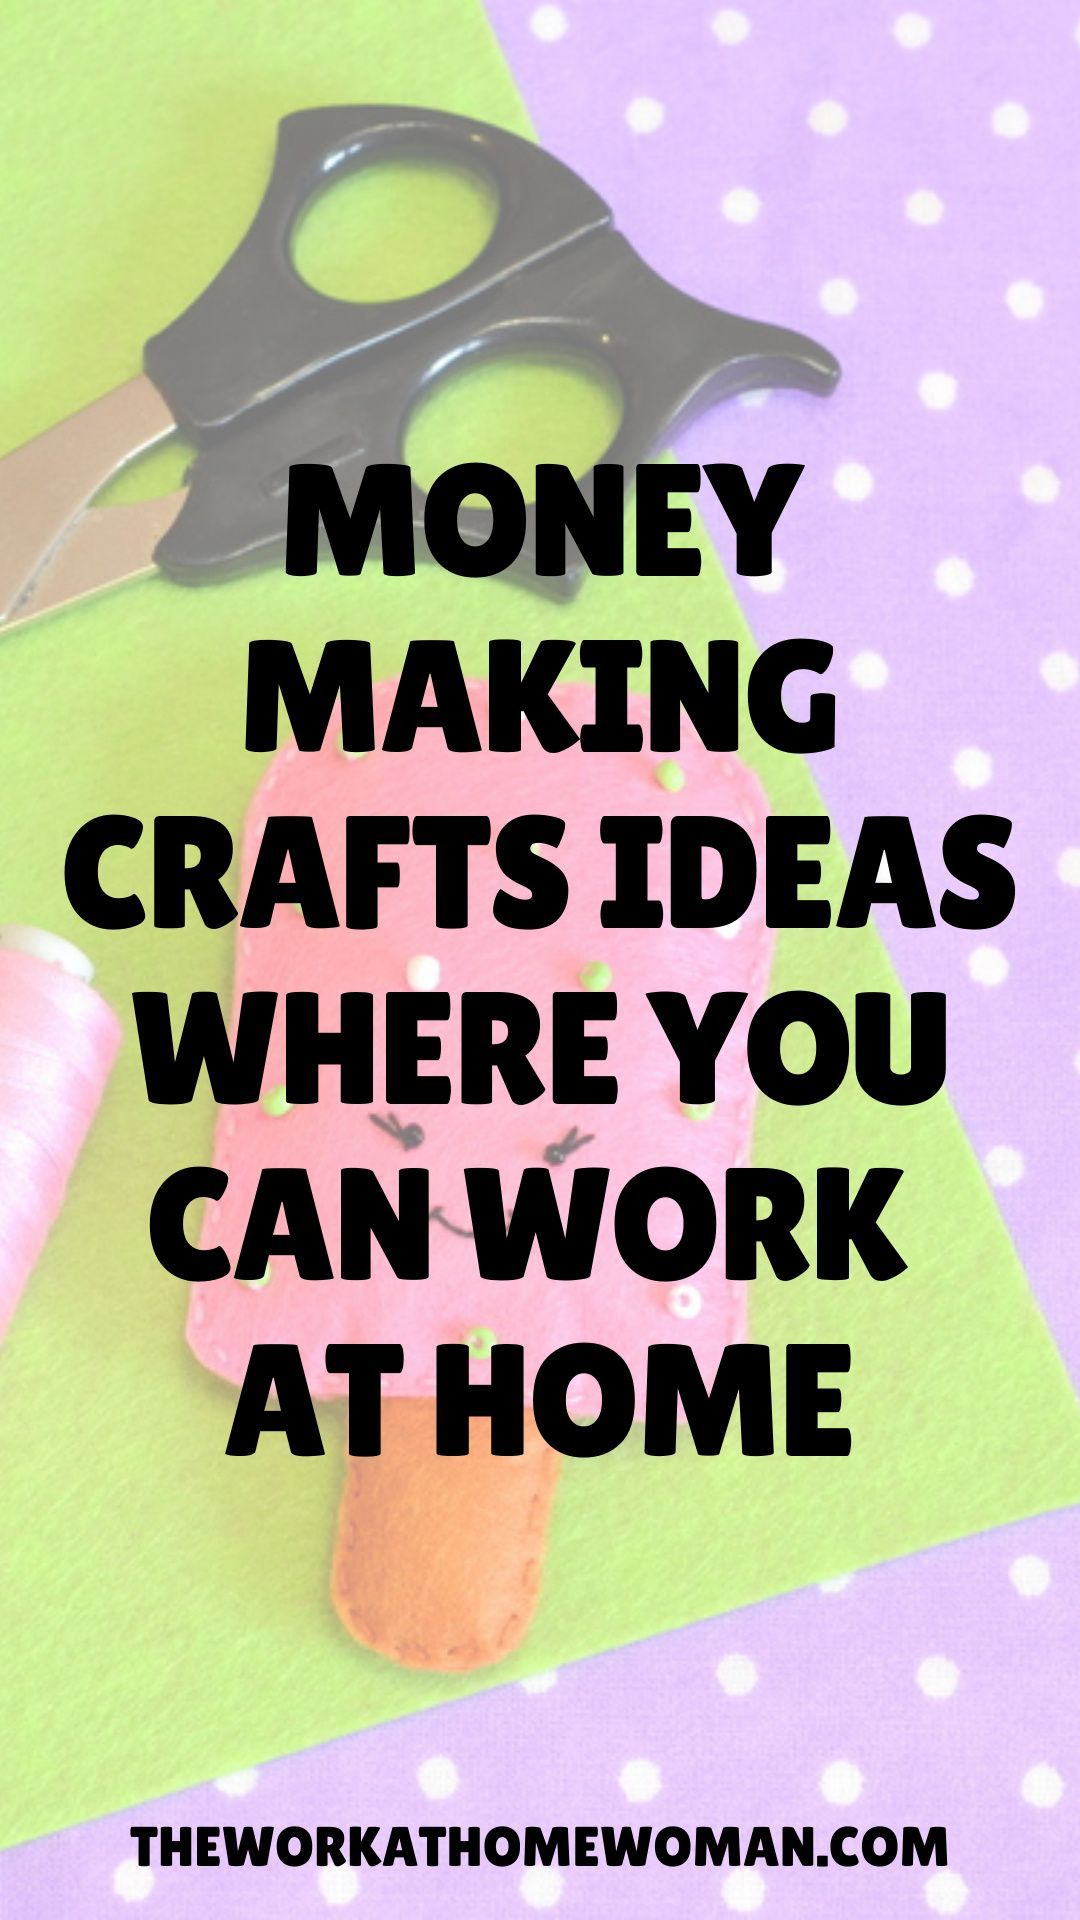 Craft Jobs for Stay-at-Home Moms